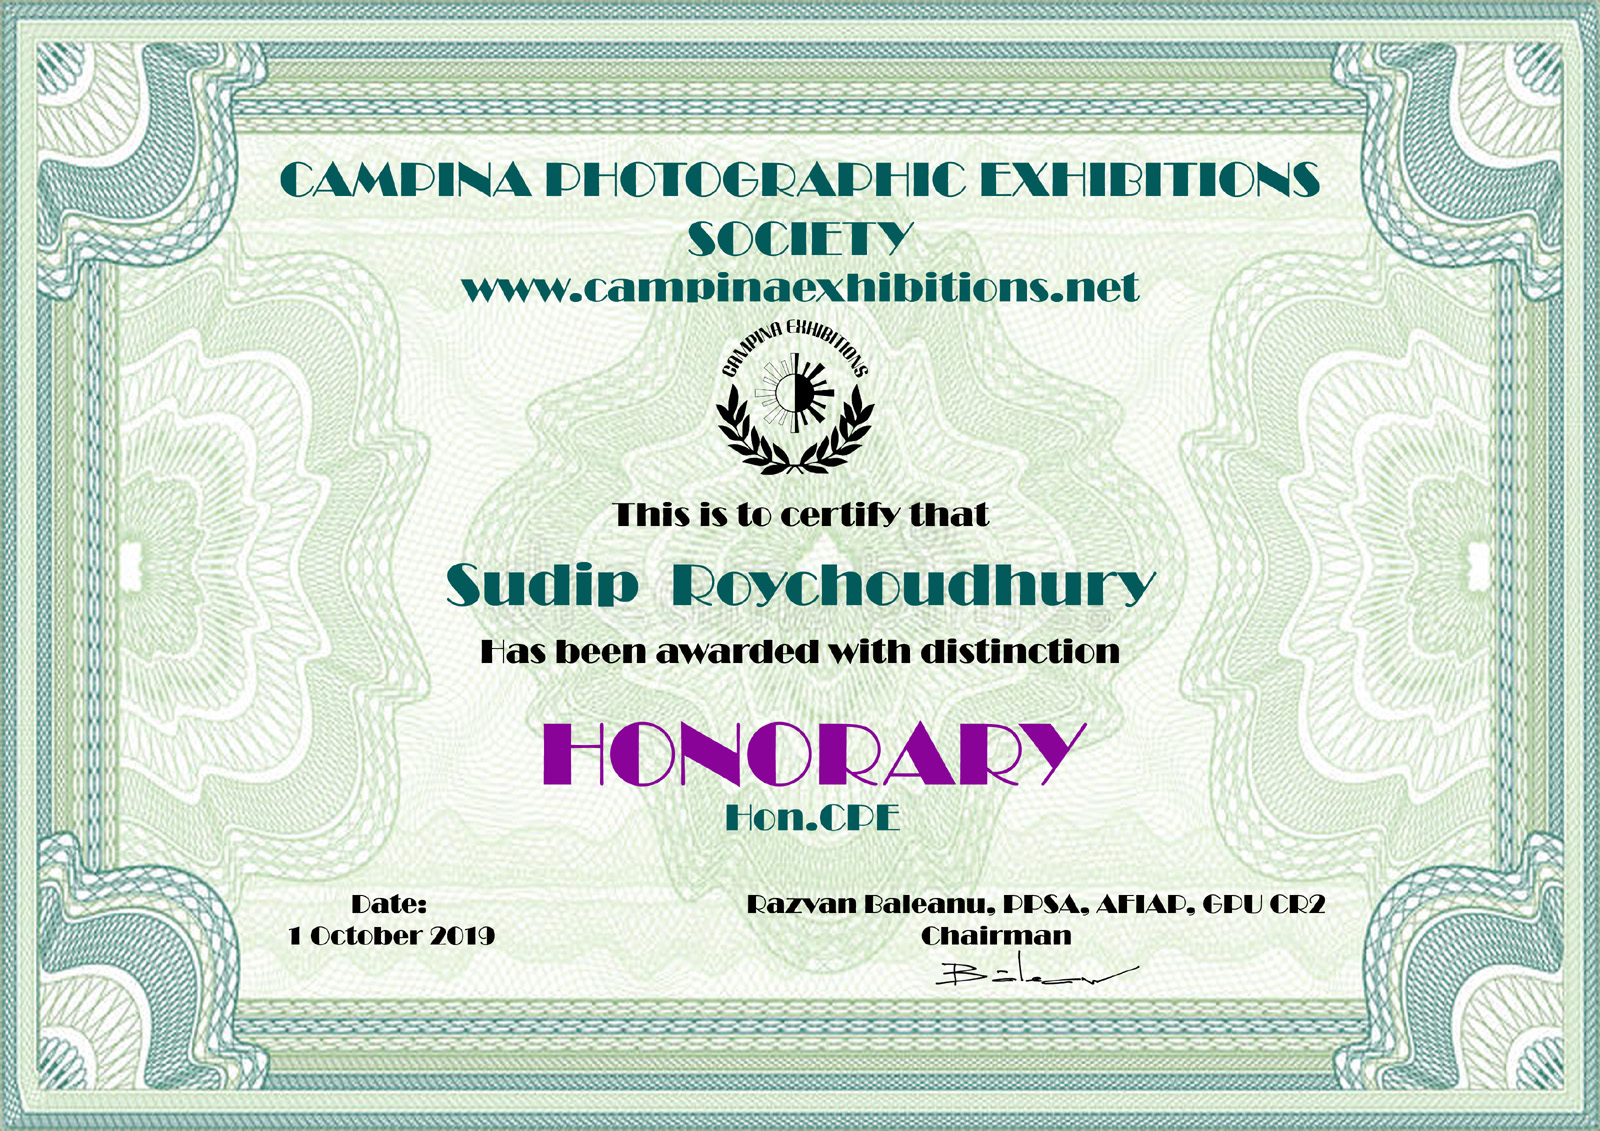 Sudip Roychoudhury - HONORARY - Hon.CPE - Campina Photographic Exhibitions Society